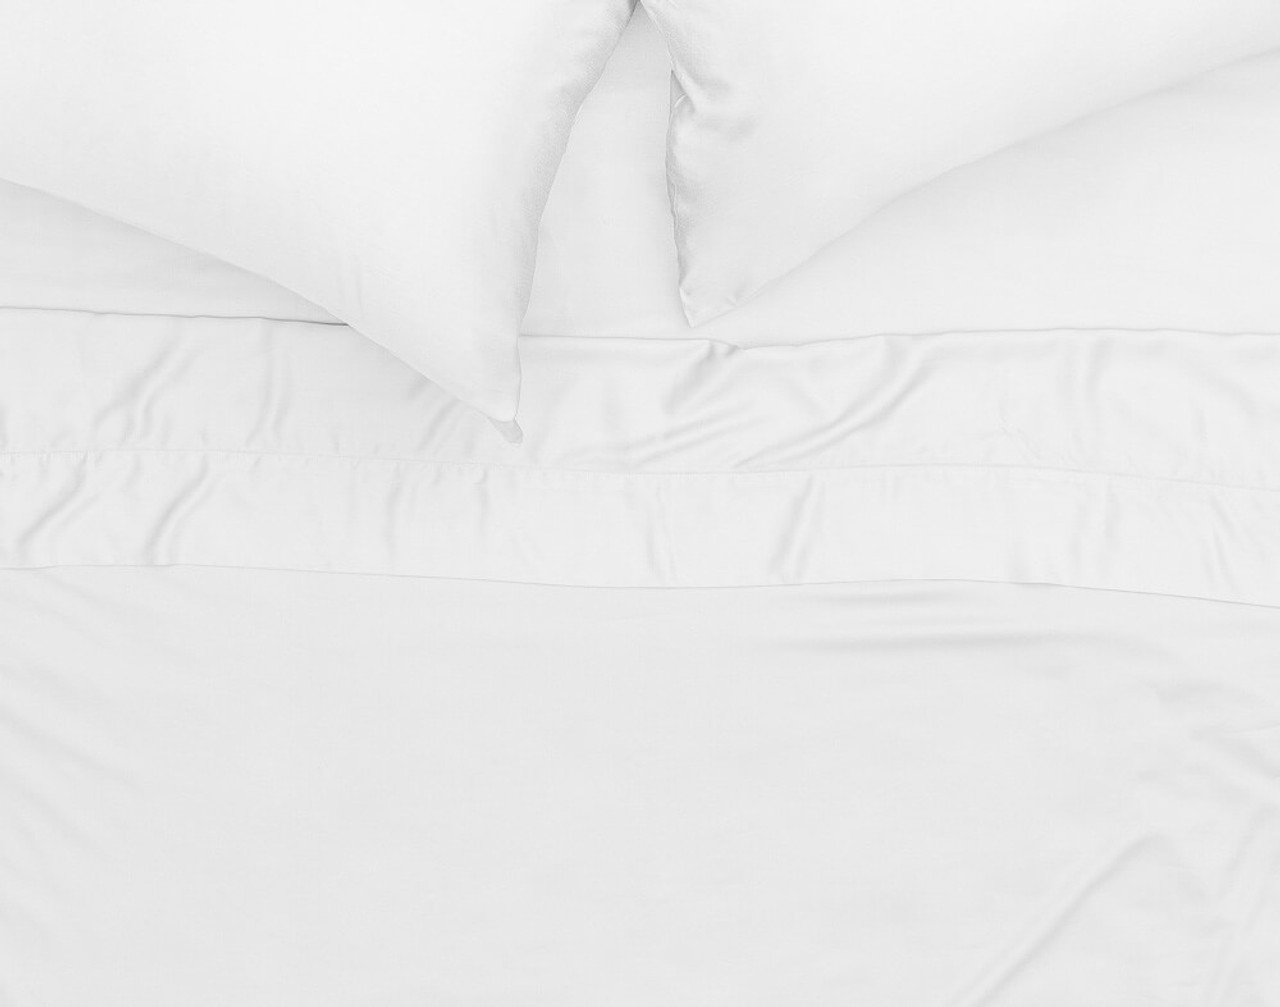 Top view of Cotton Blend Percale Flat Sheet over a bed.